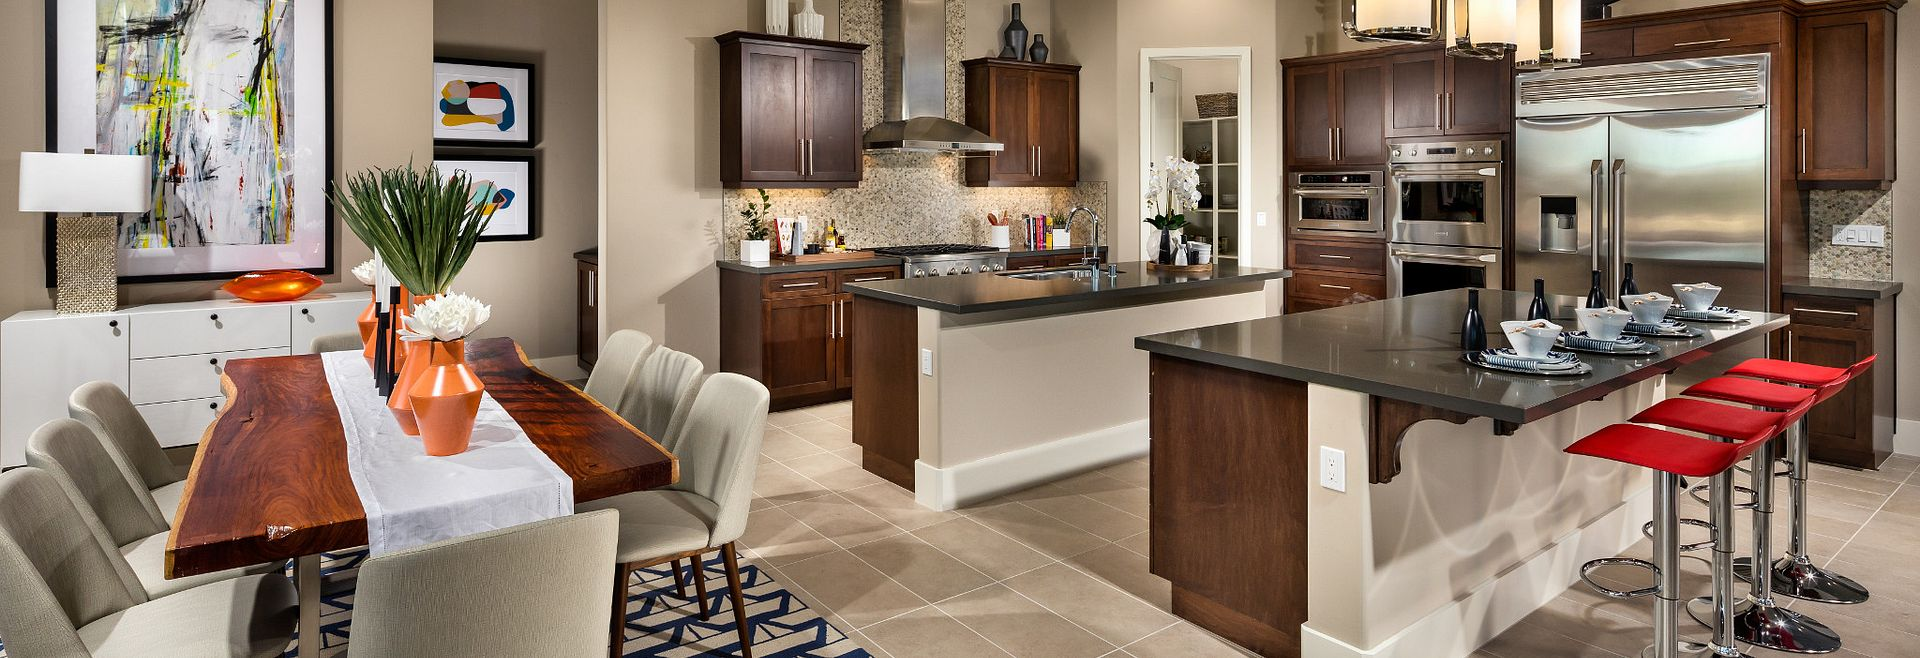 Albarino Plan Kitchen